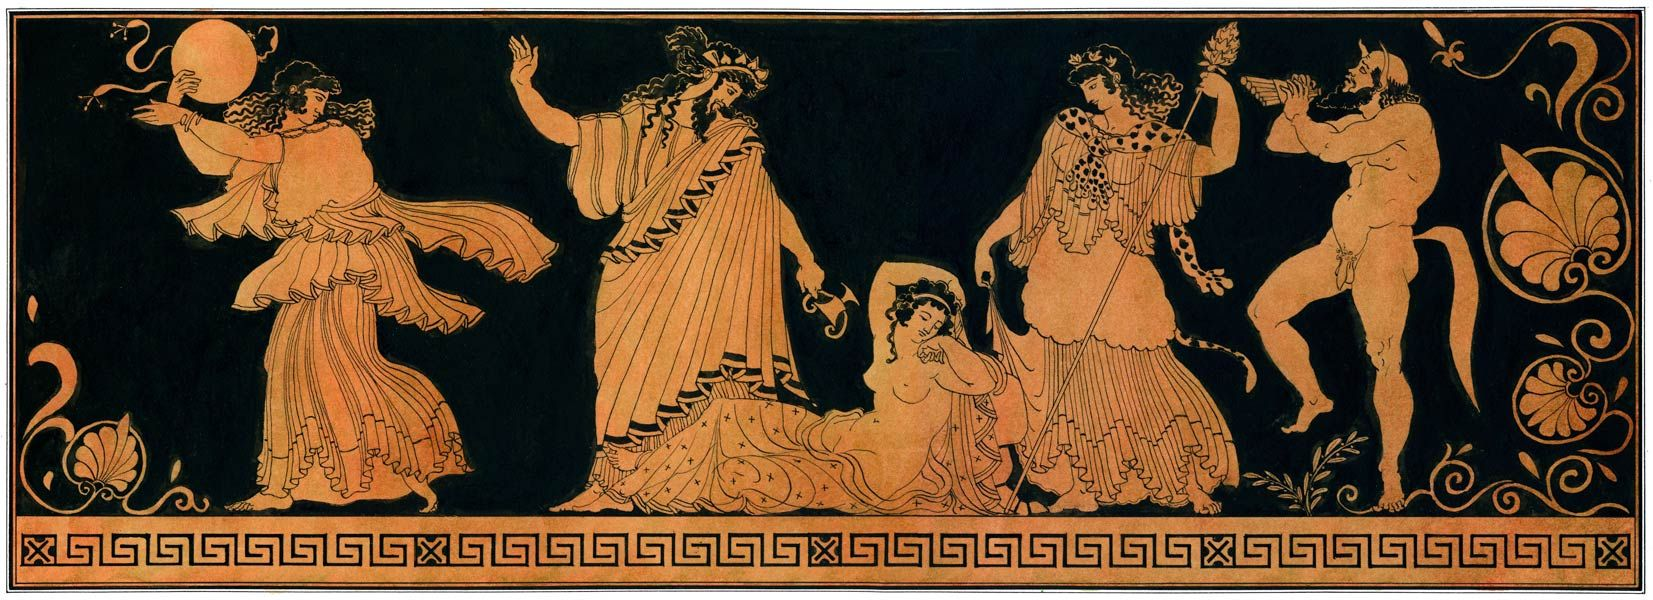 an analysis of the ancient greek theater through the examination of vases and written histories Greek theatre and its origin from ancient greece in the forms of tragedy, comedy and satyr.